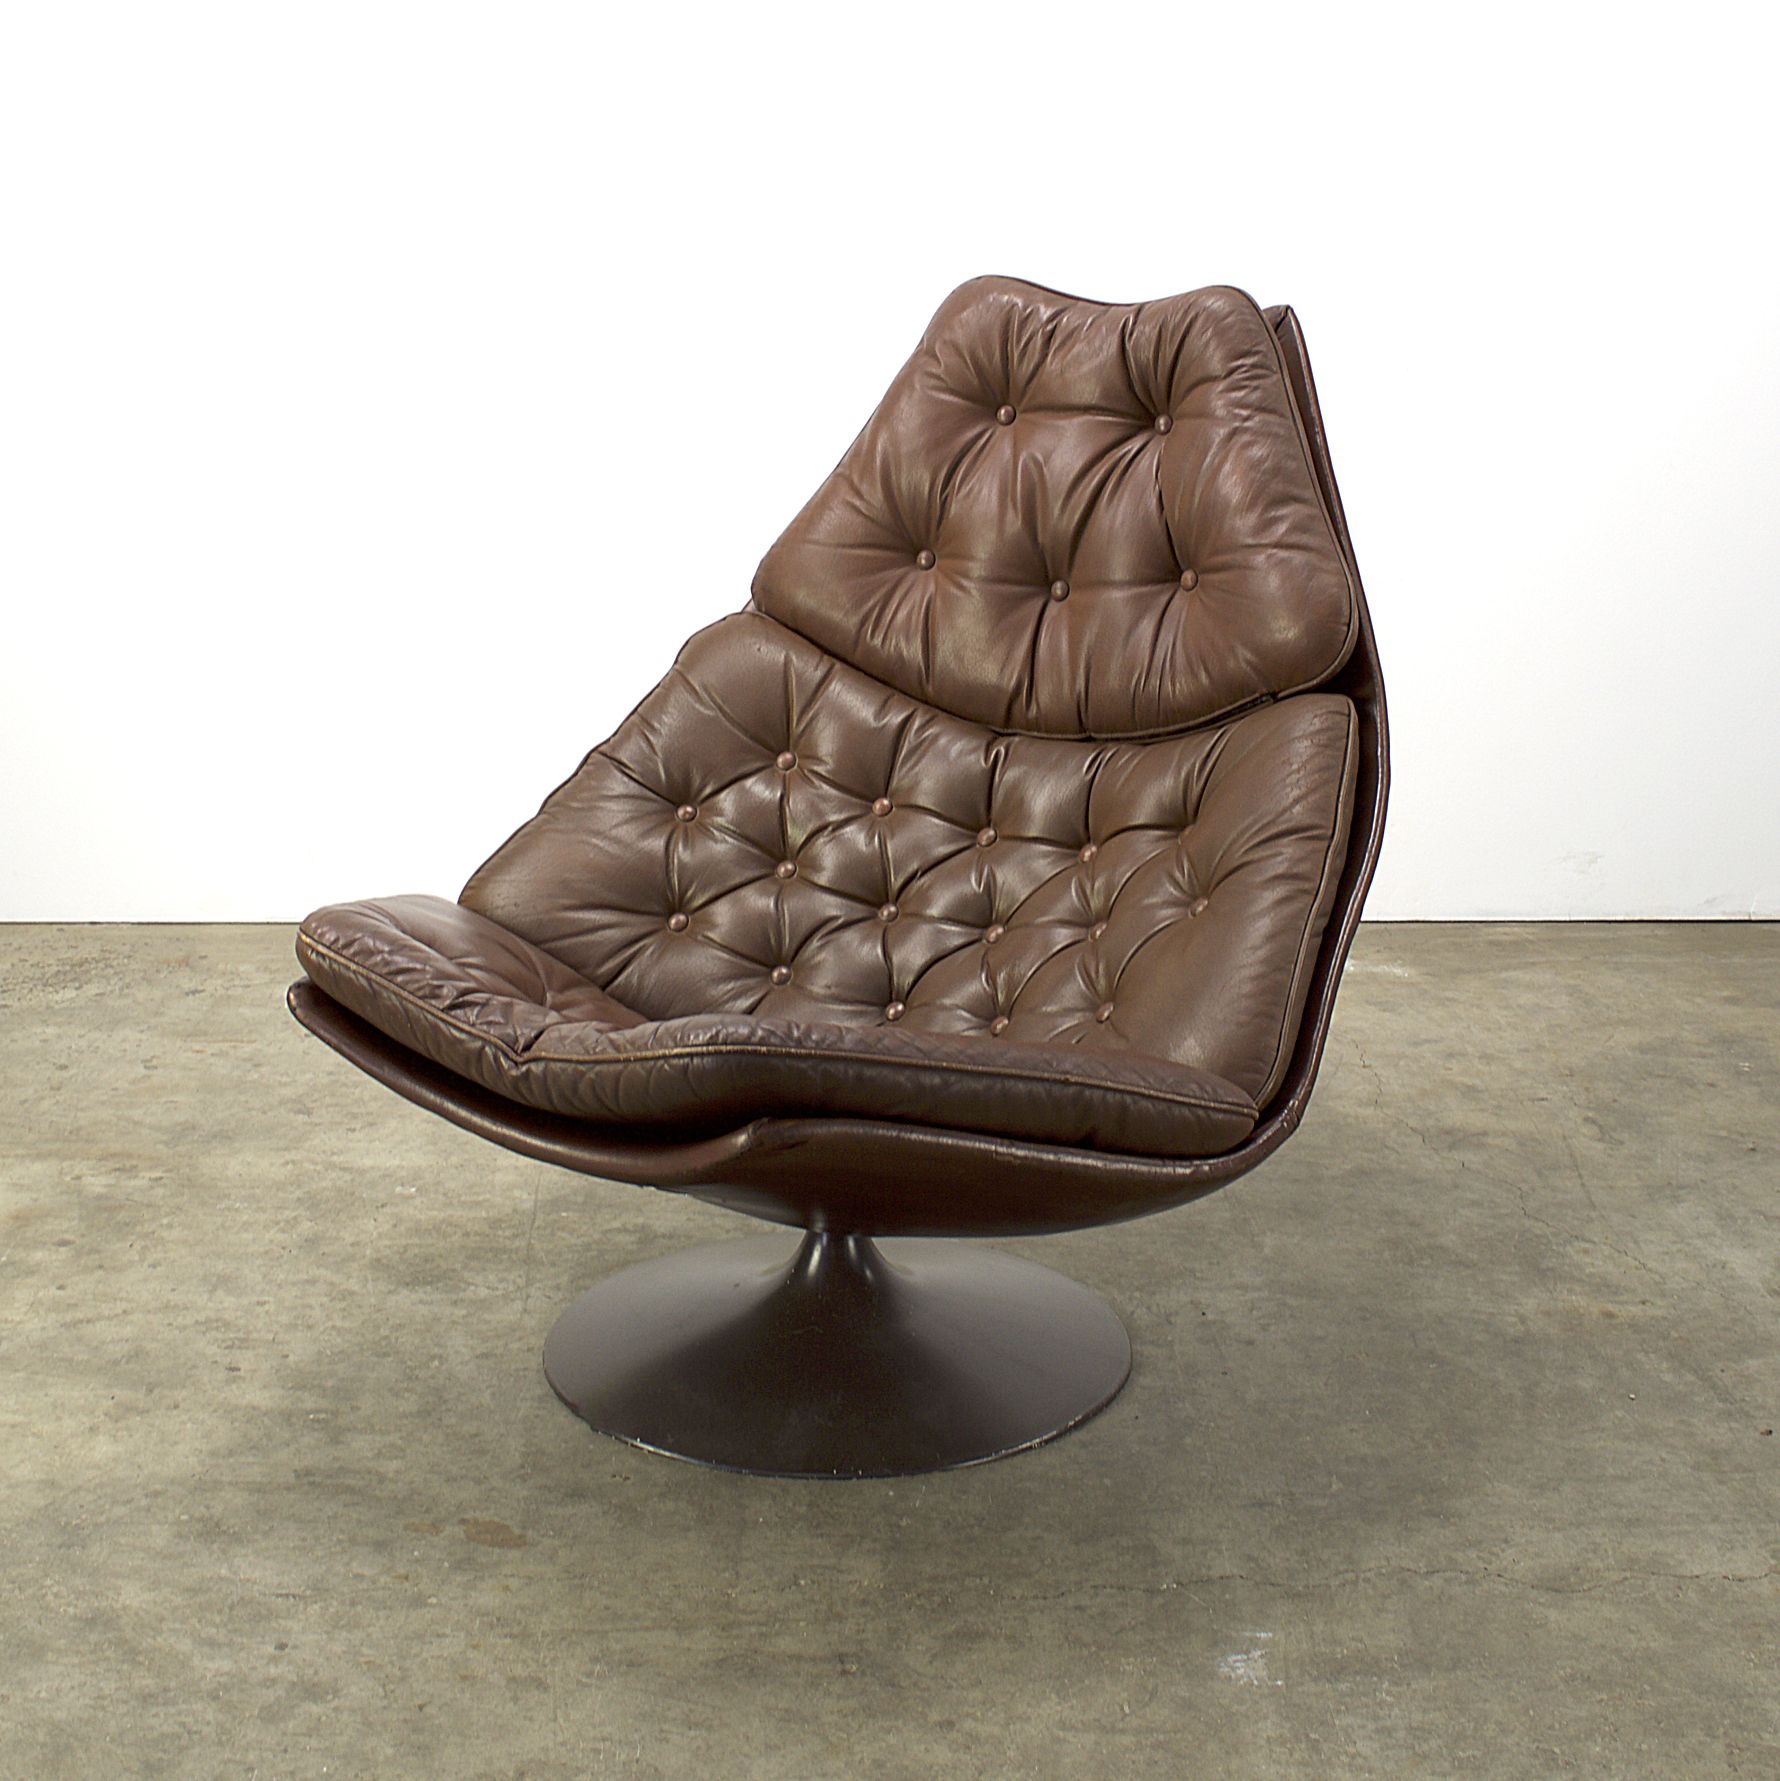 Artifort f588 fauteuil by geoffrey harcourt barbmama for Stoel leer